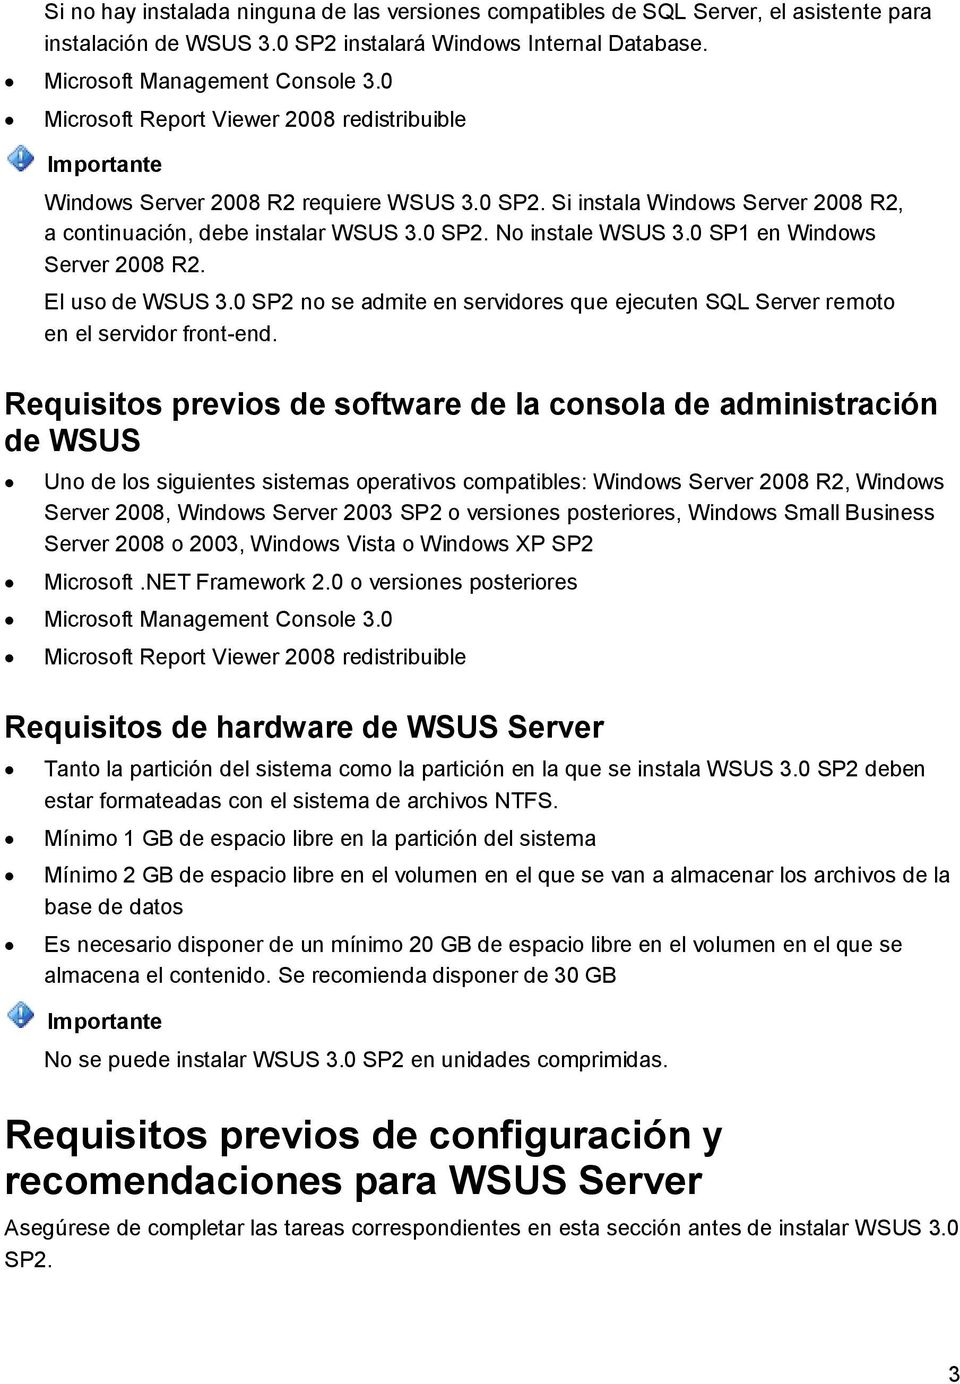 0 SP1 en Windows Server 2008 R2. El uso de WSUS 3.0 SP2 no se admite en servidores que ejecuten SQL Server remoto en el servidor front-end.